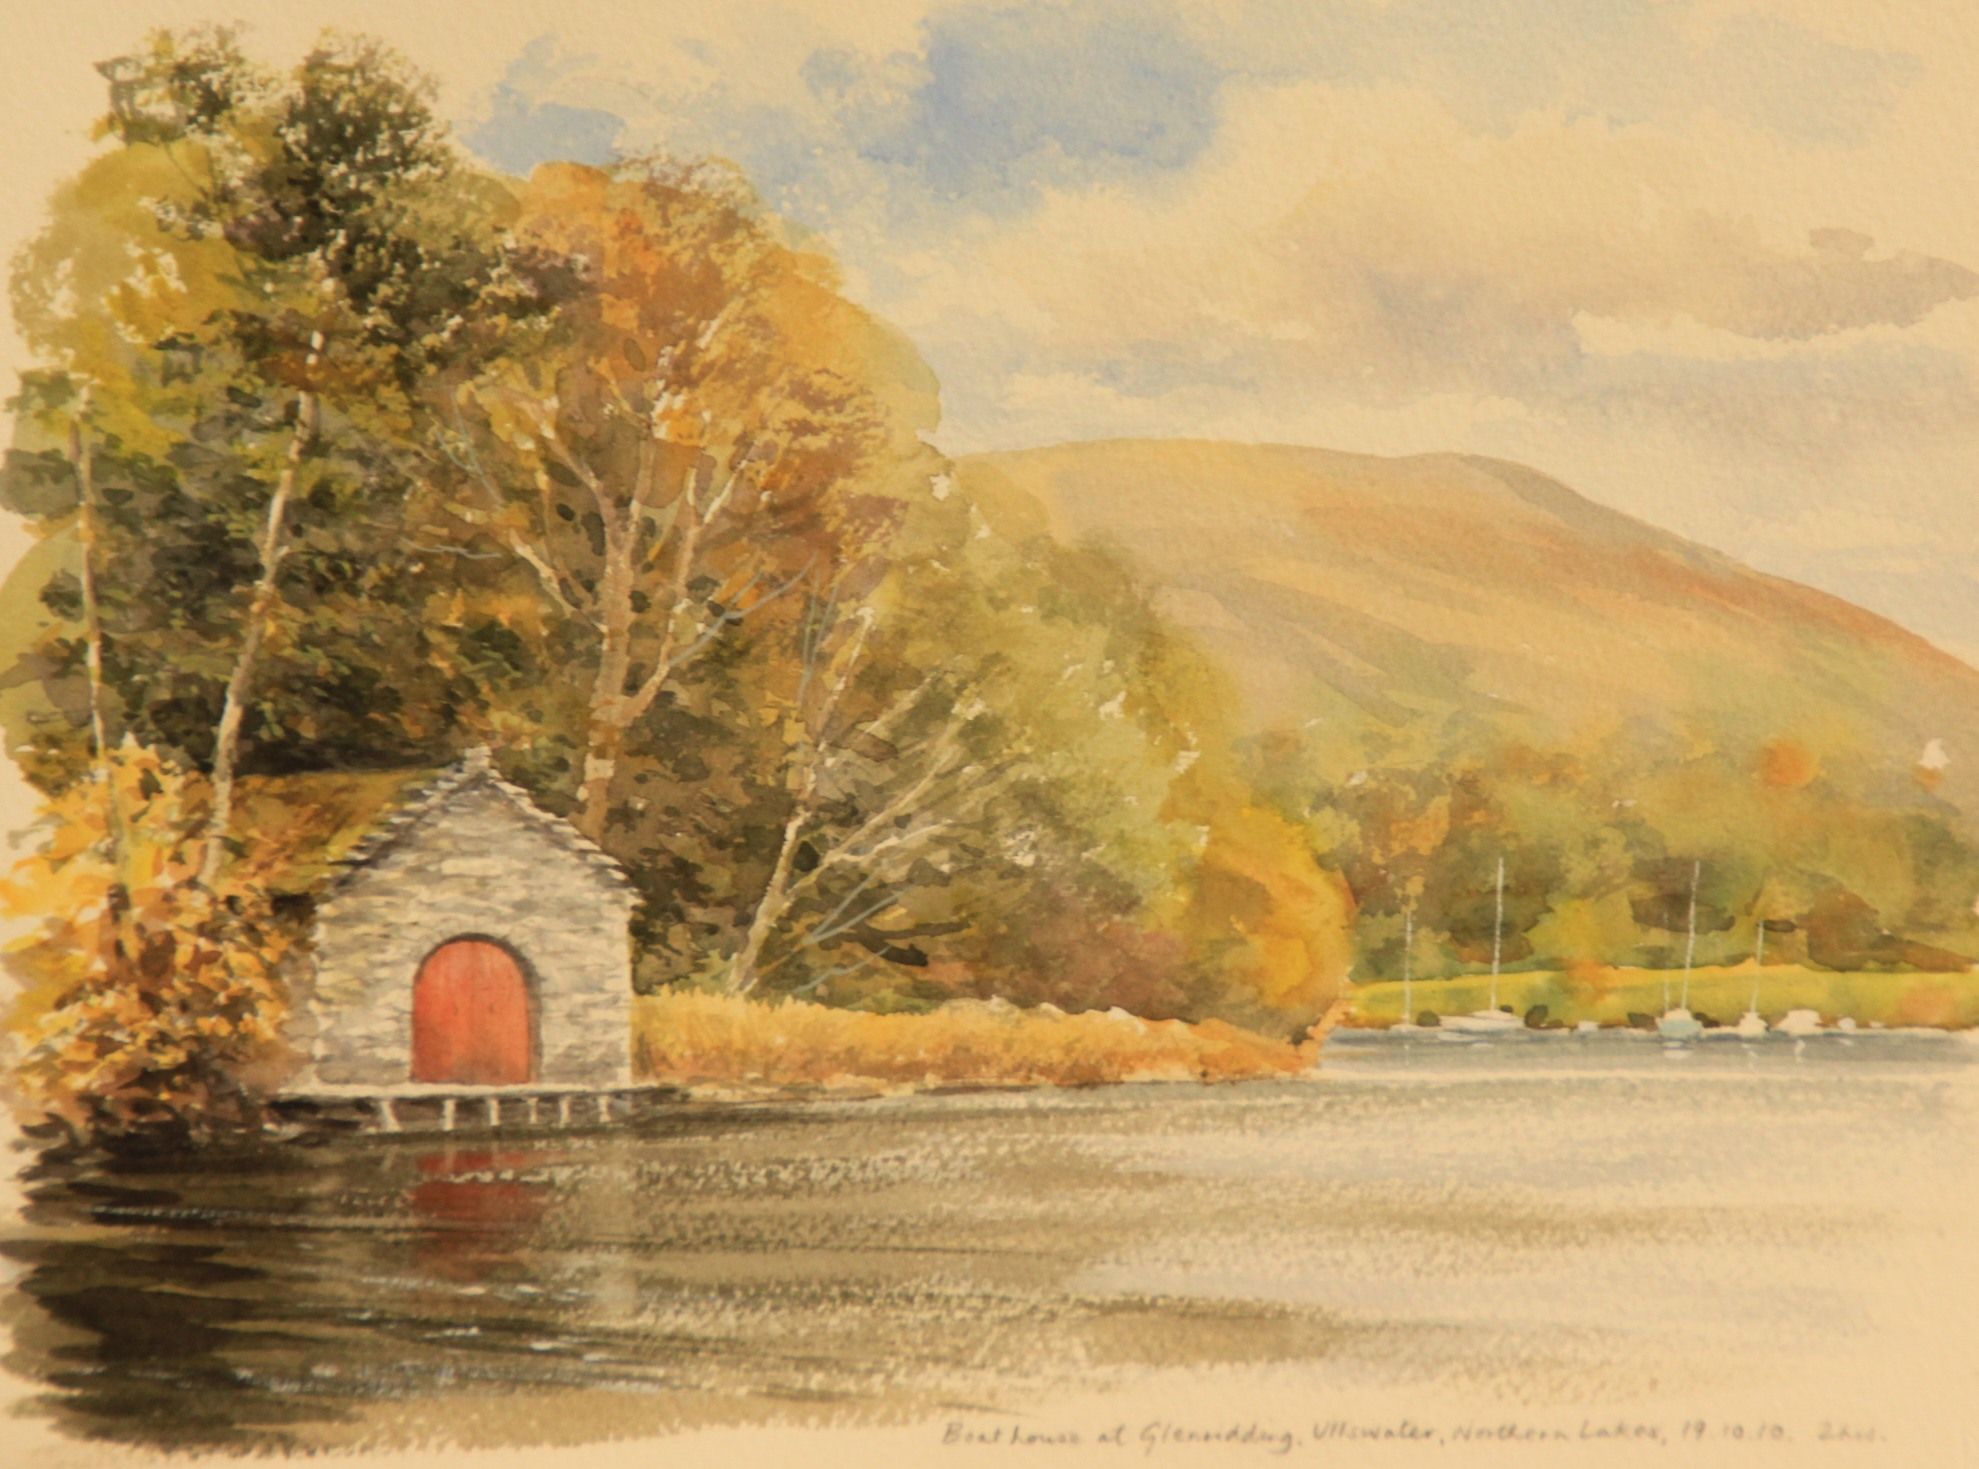 Paint the Southern Lakes, Villages & Castles of Cumbria